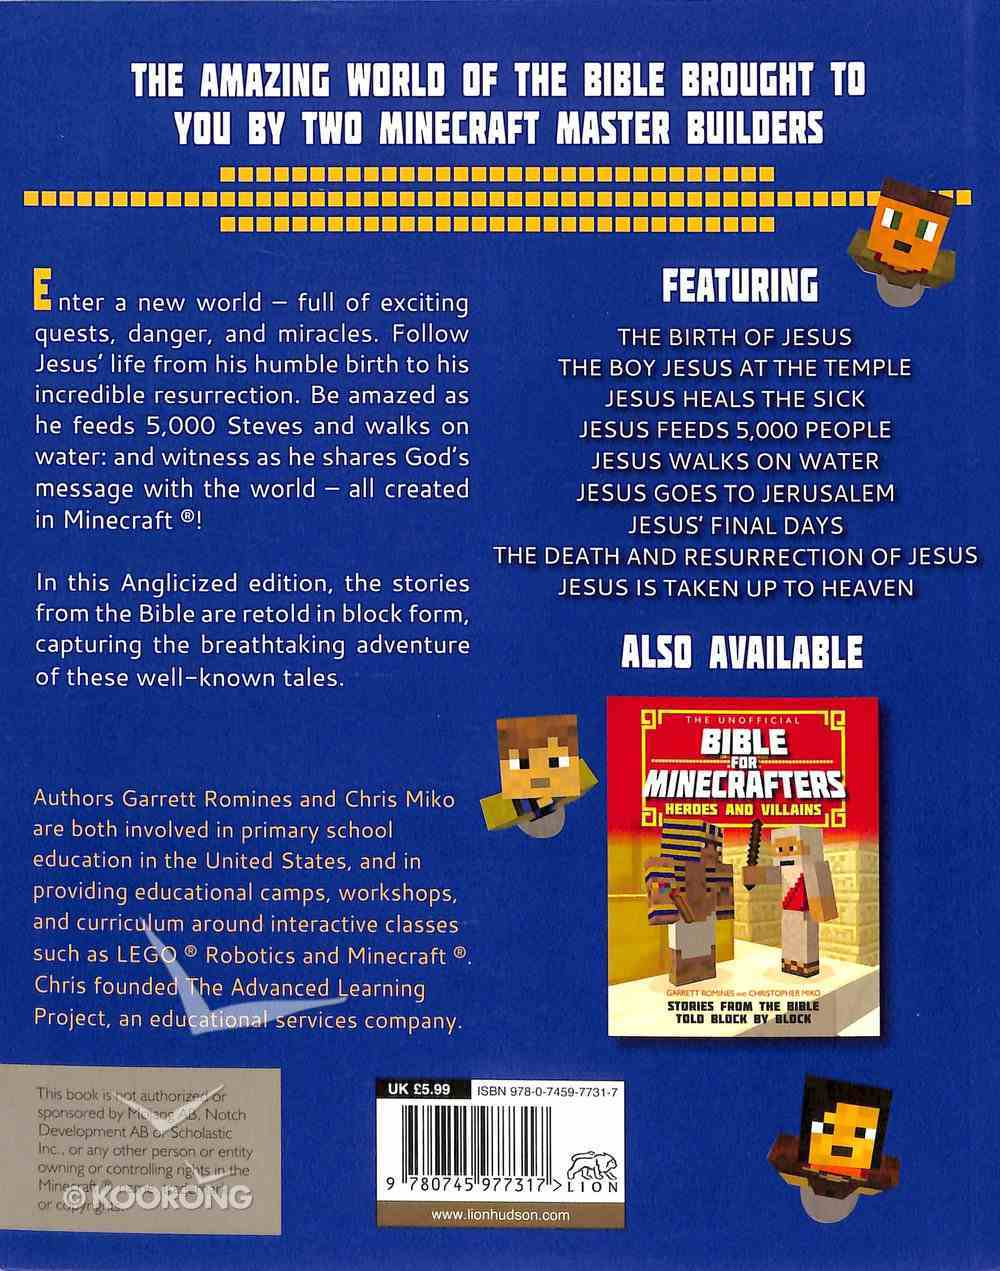 The Unofficial Bible For Minecrafters: Life of Jesus Paperback